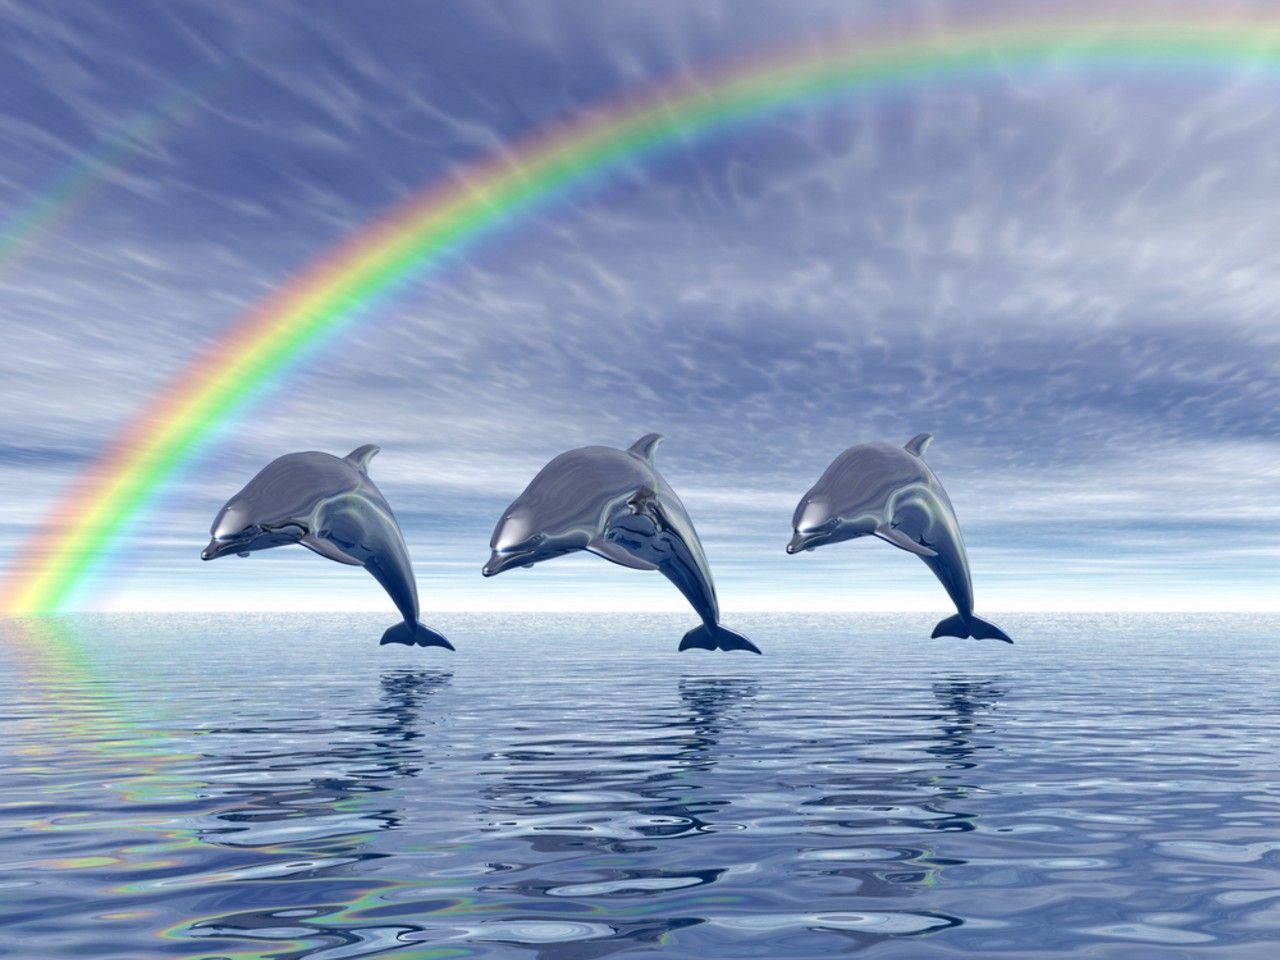 Hd Wallpapers Beautiful Dolphins Hd Wallpapers 1600x1200 Dolphin Images Dolphins Dolphin Wallpaper Full hd dolphin wallpapers hd desktop